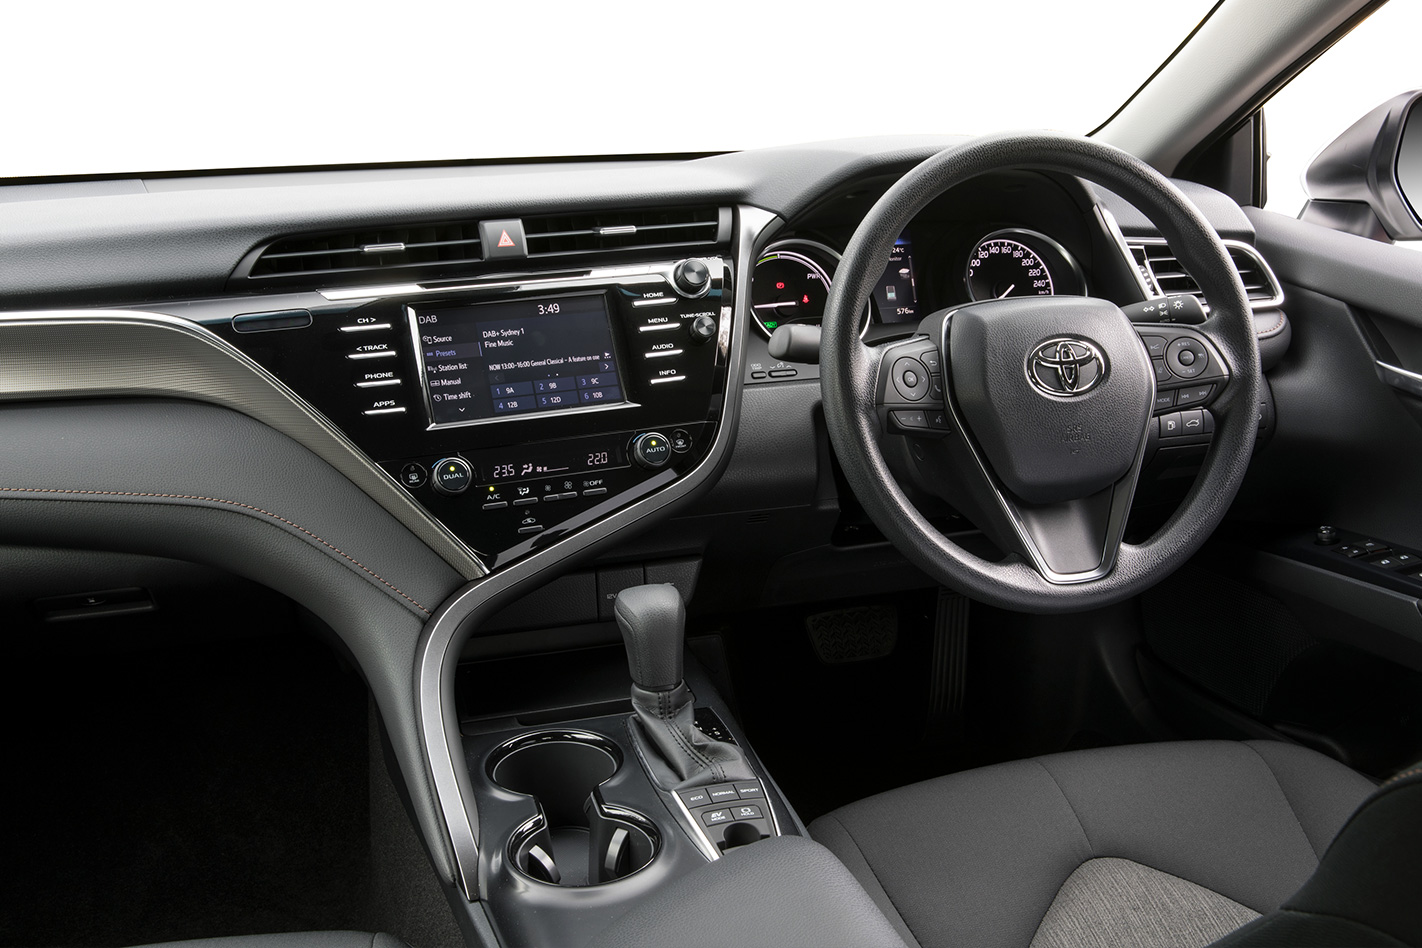 Toyota Camry: Shift ranges and their functions